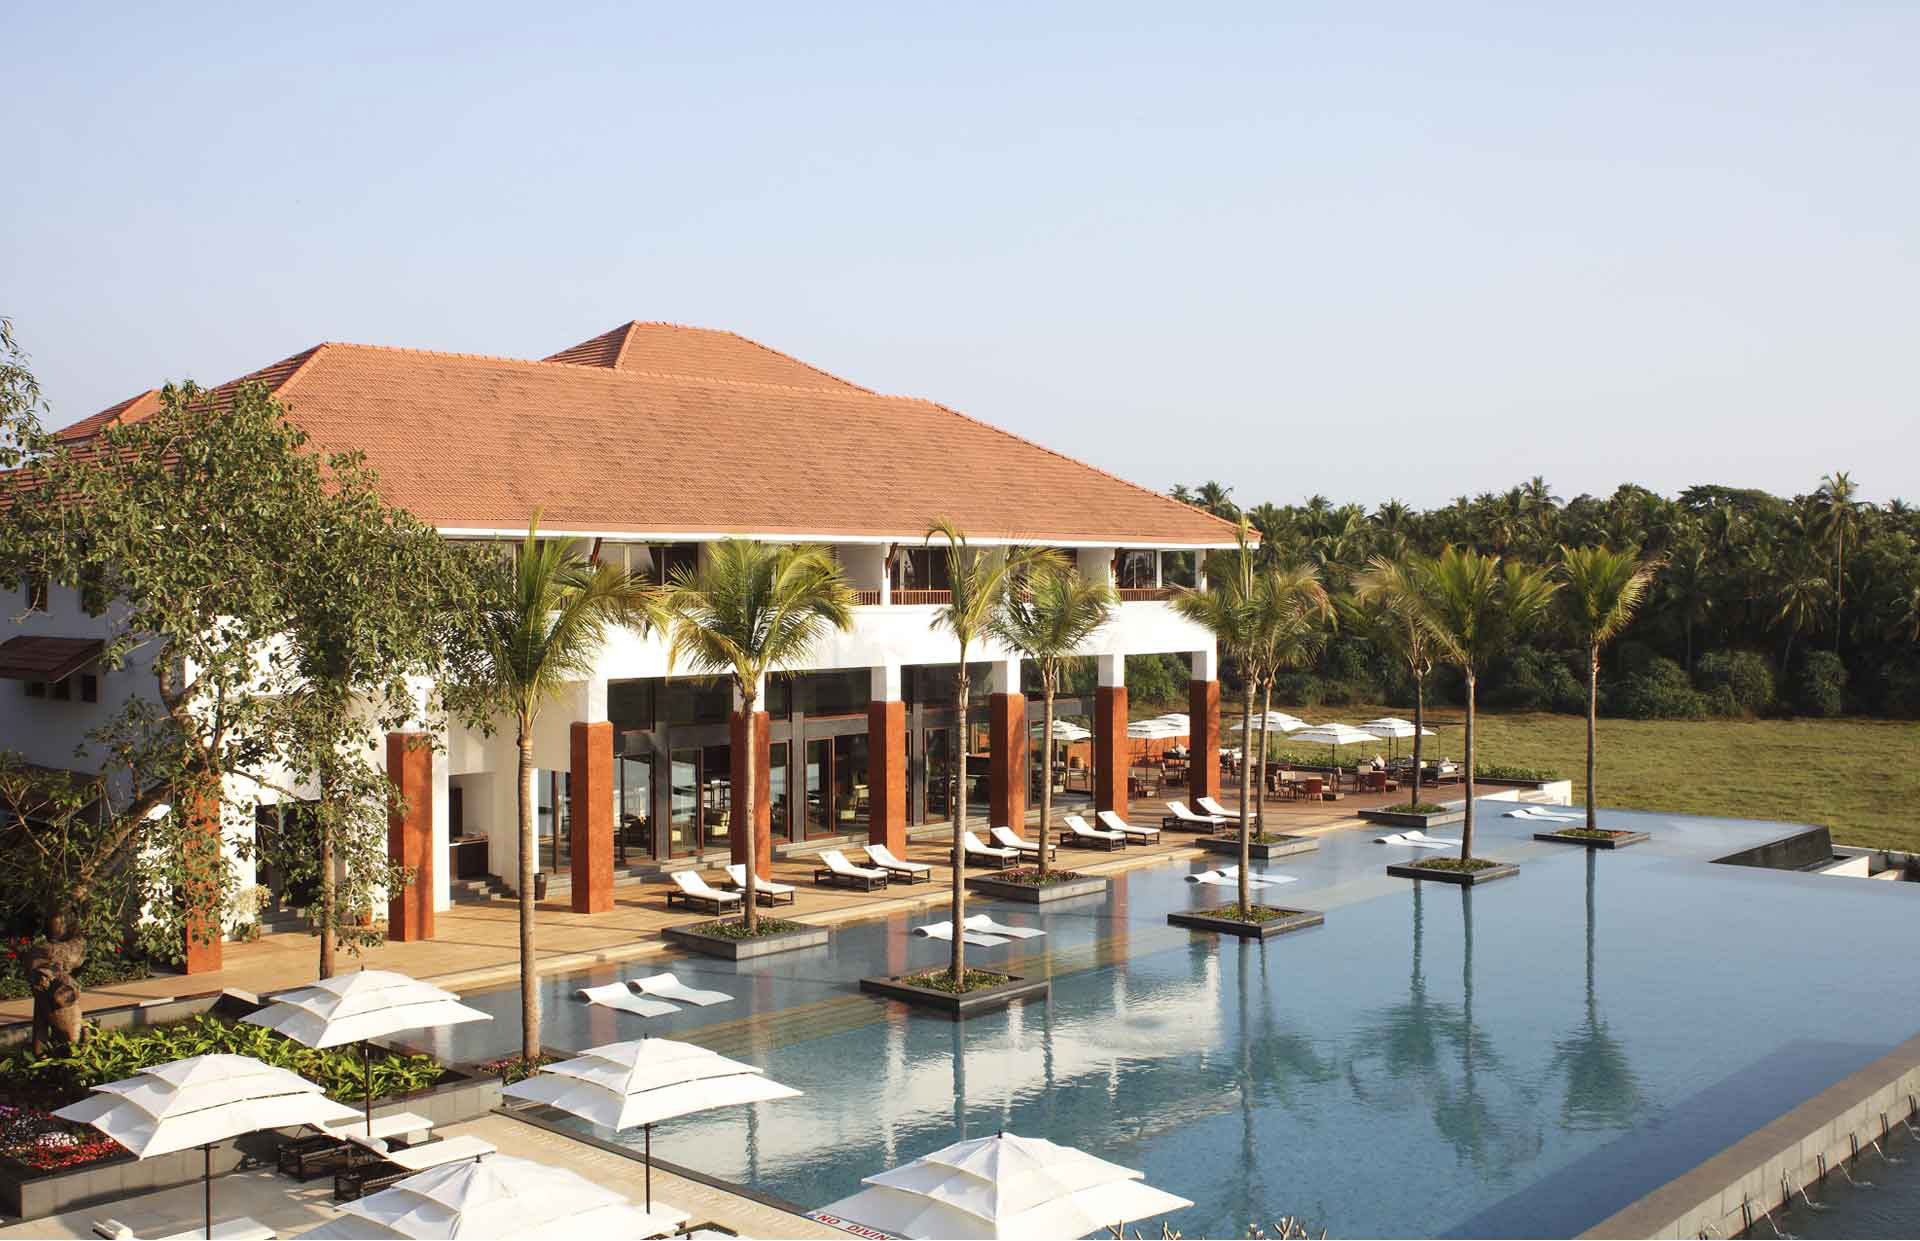 Striking alila diwa located in gorgeous goa india for Small luxury hotels of the world wiki